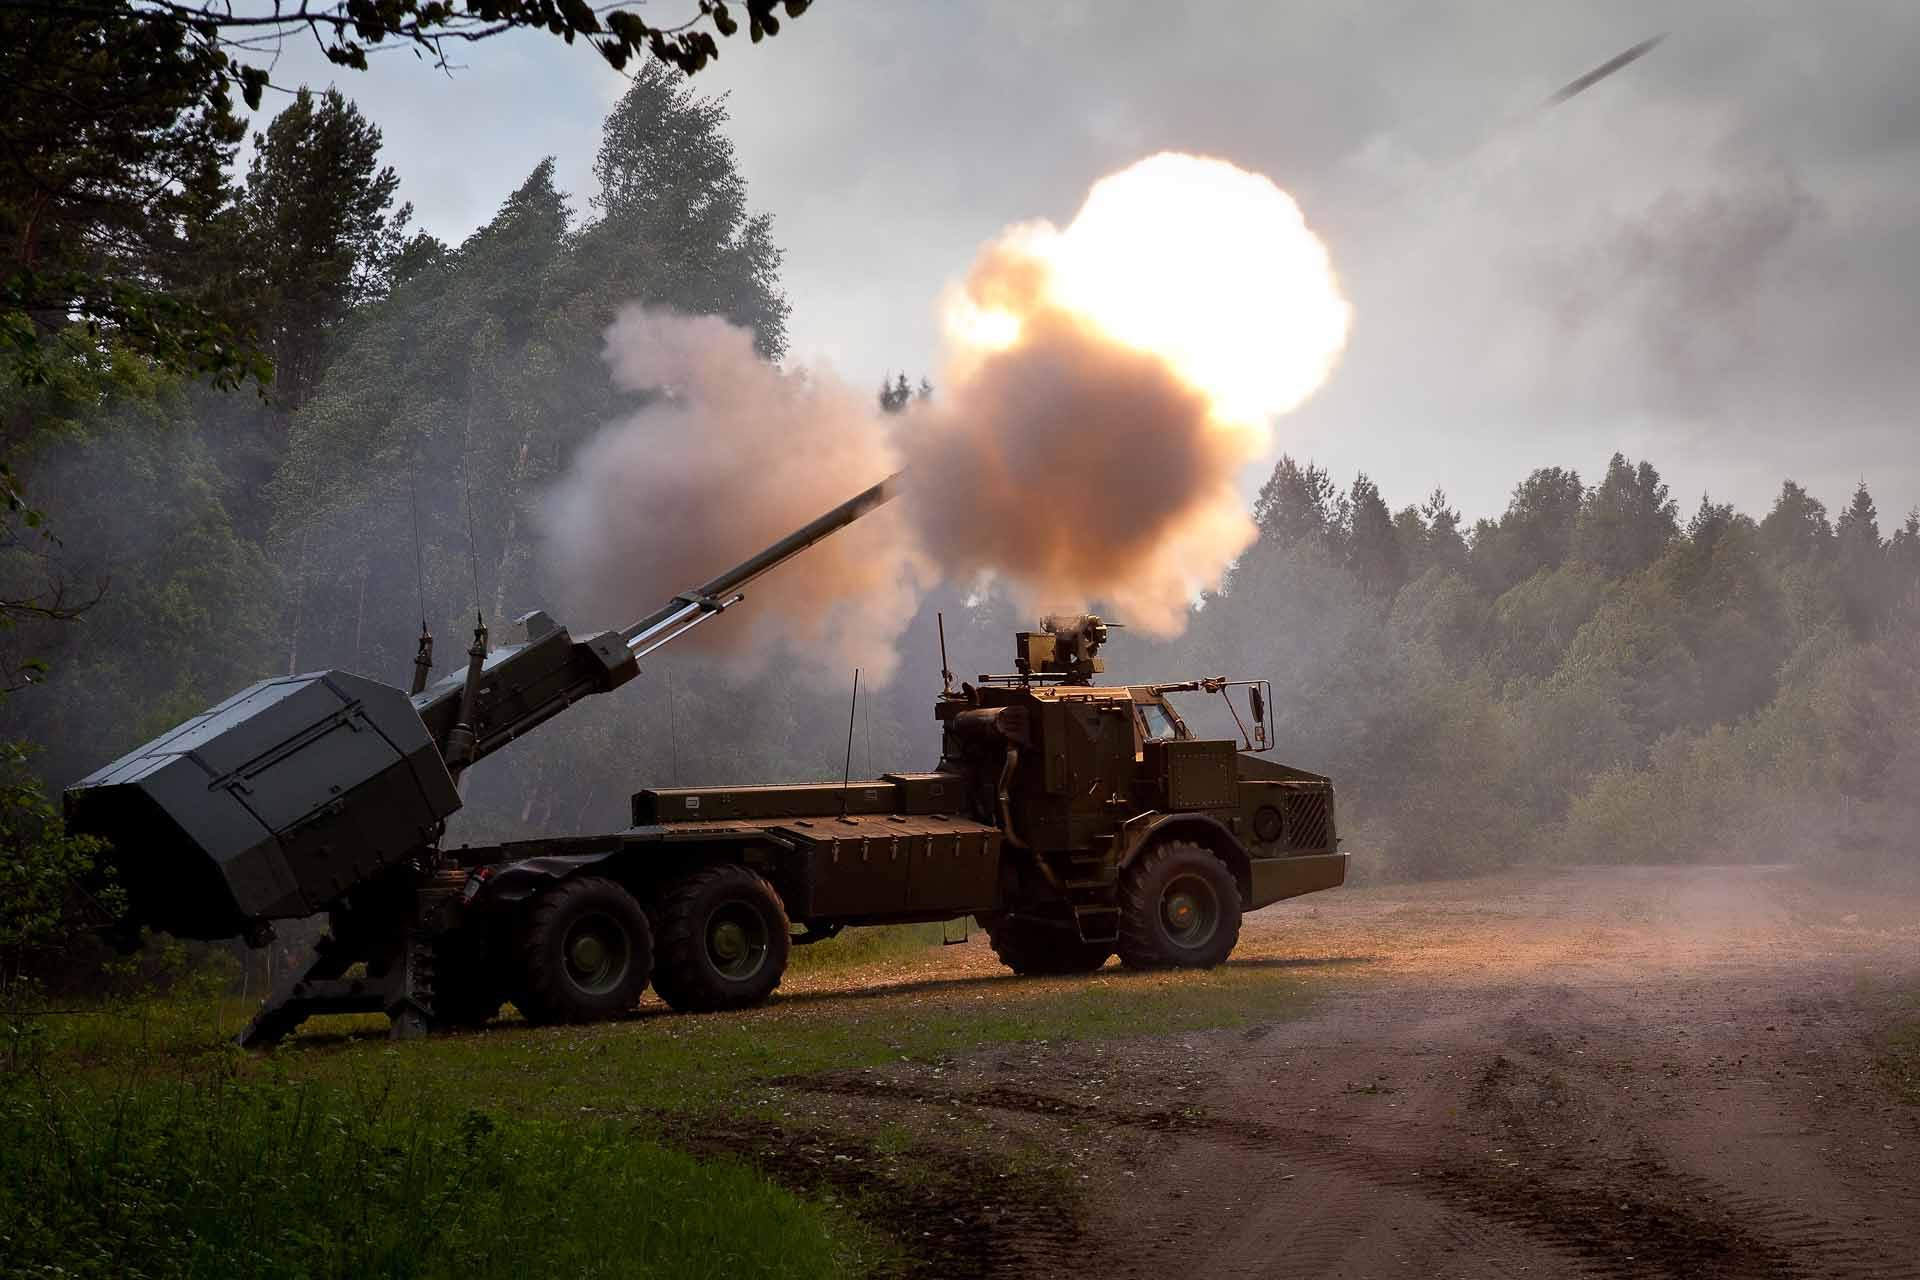 Artillery Systems - Global Market Outlook (2017-2026)